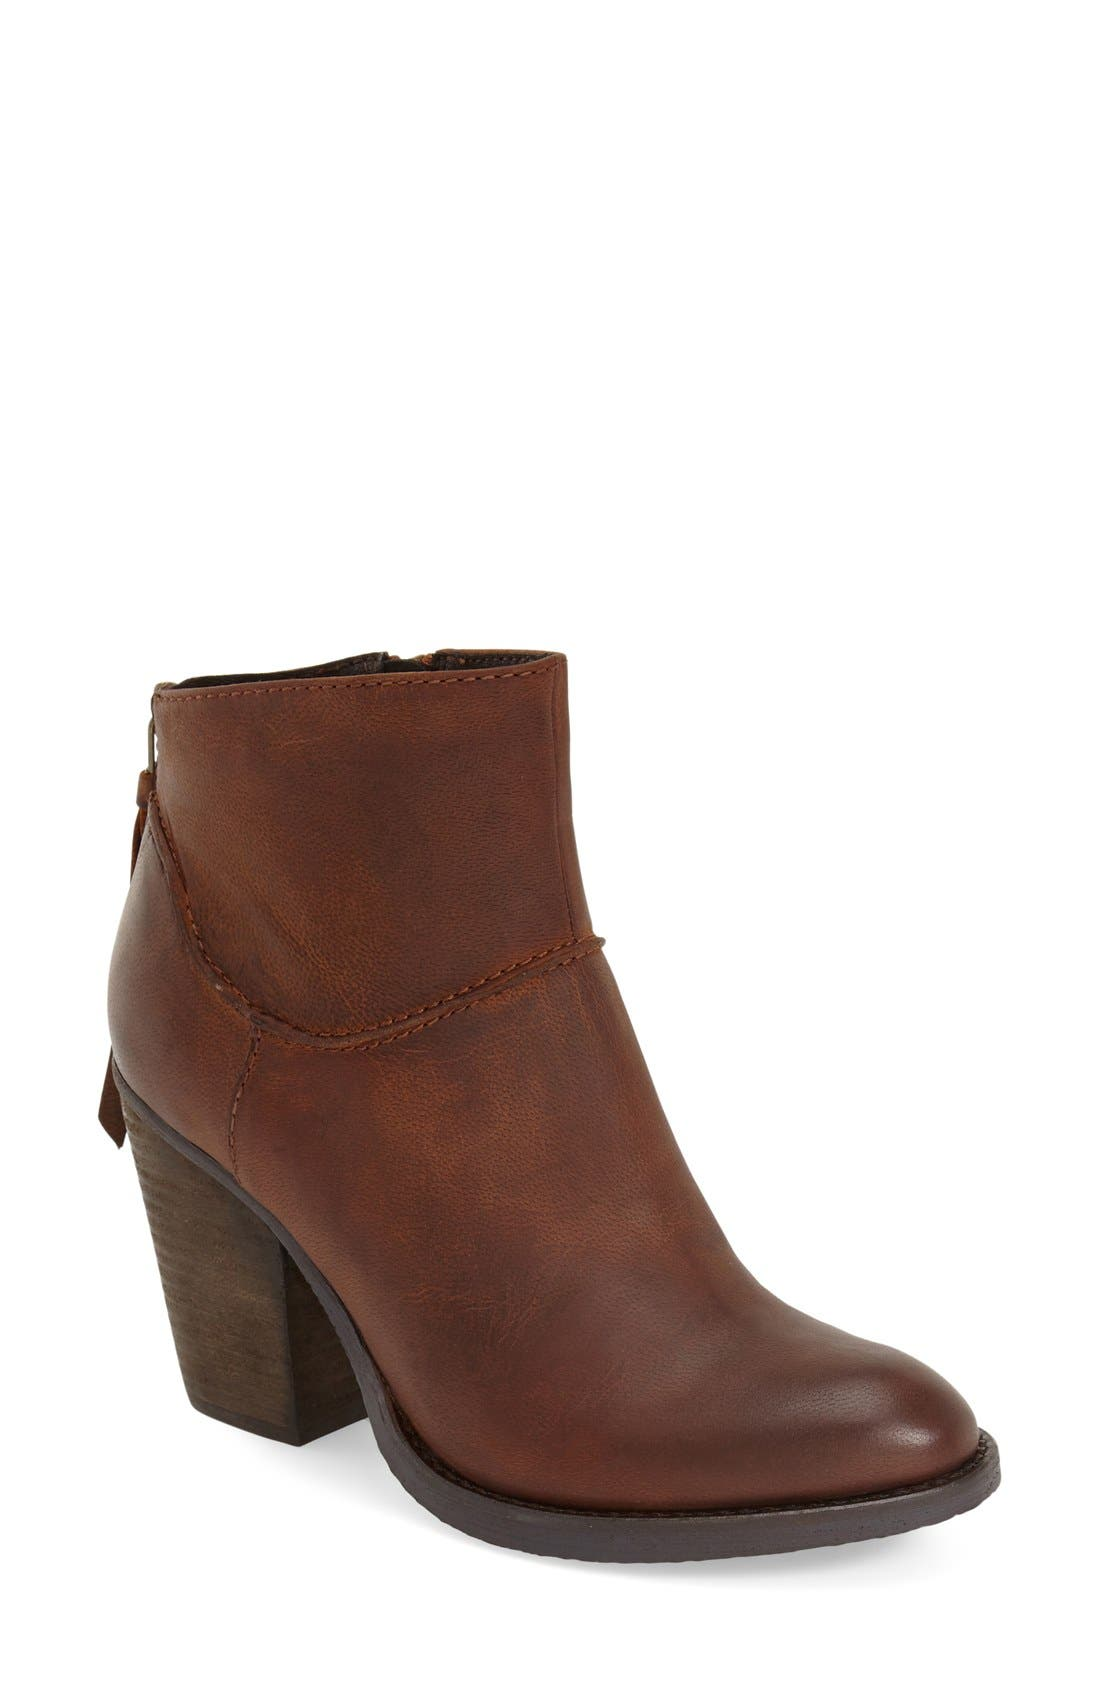 Alternate Image 1 Selected - Steve Madden 'Radioo' Bootie (Women)